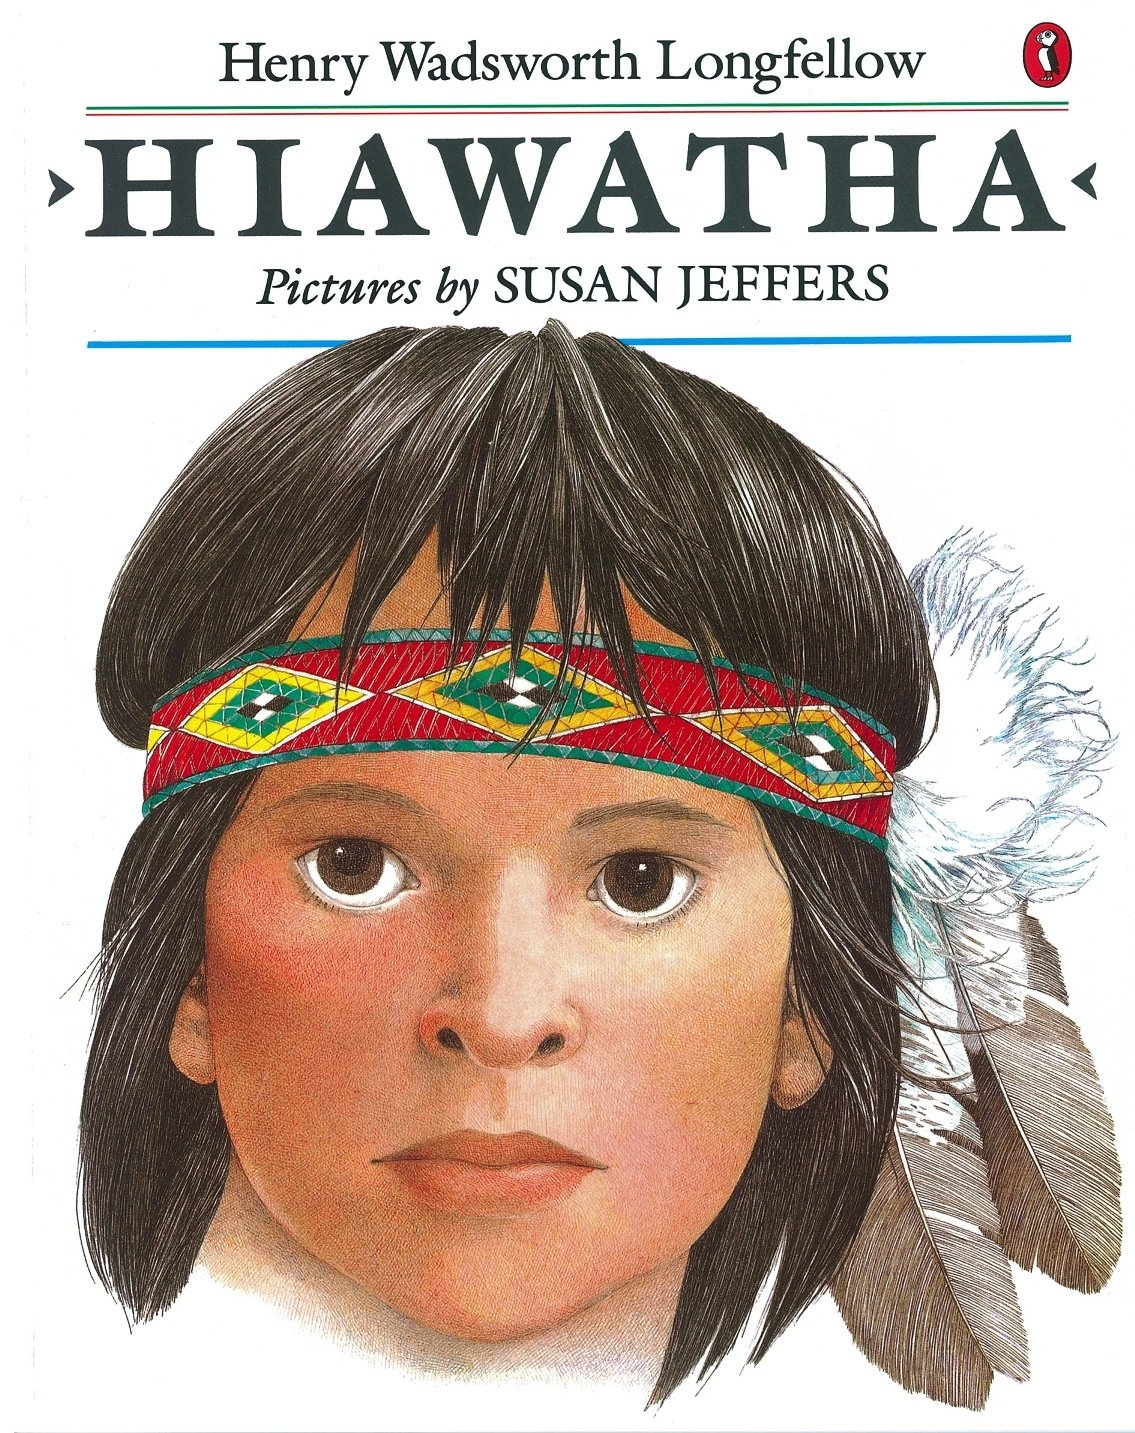 hiawatha picture puffin co uk henry longfellow susan hiawatha picture puffin co uk henry longfellow susan jeffers 9780140549812 books